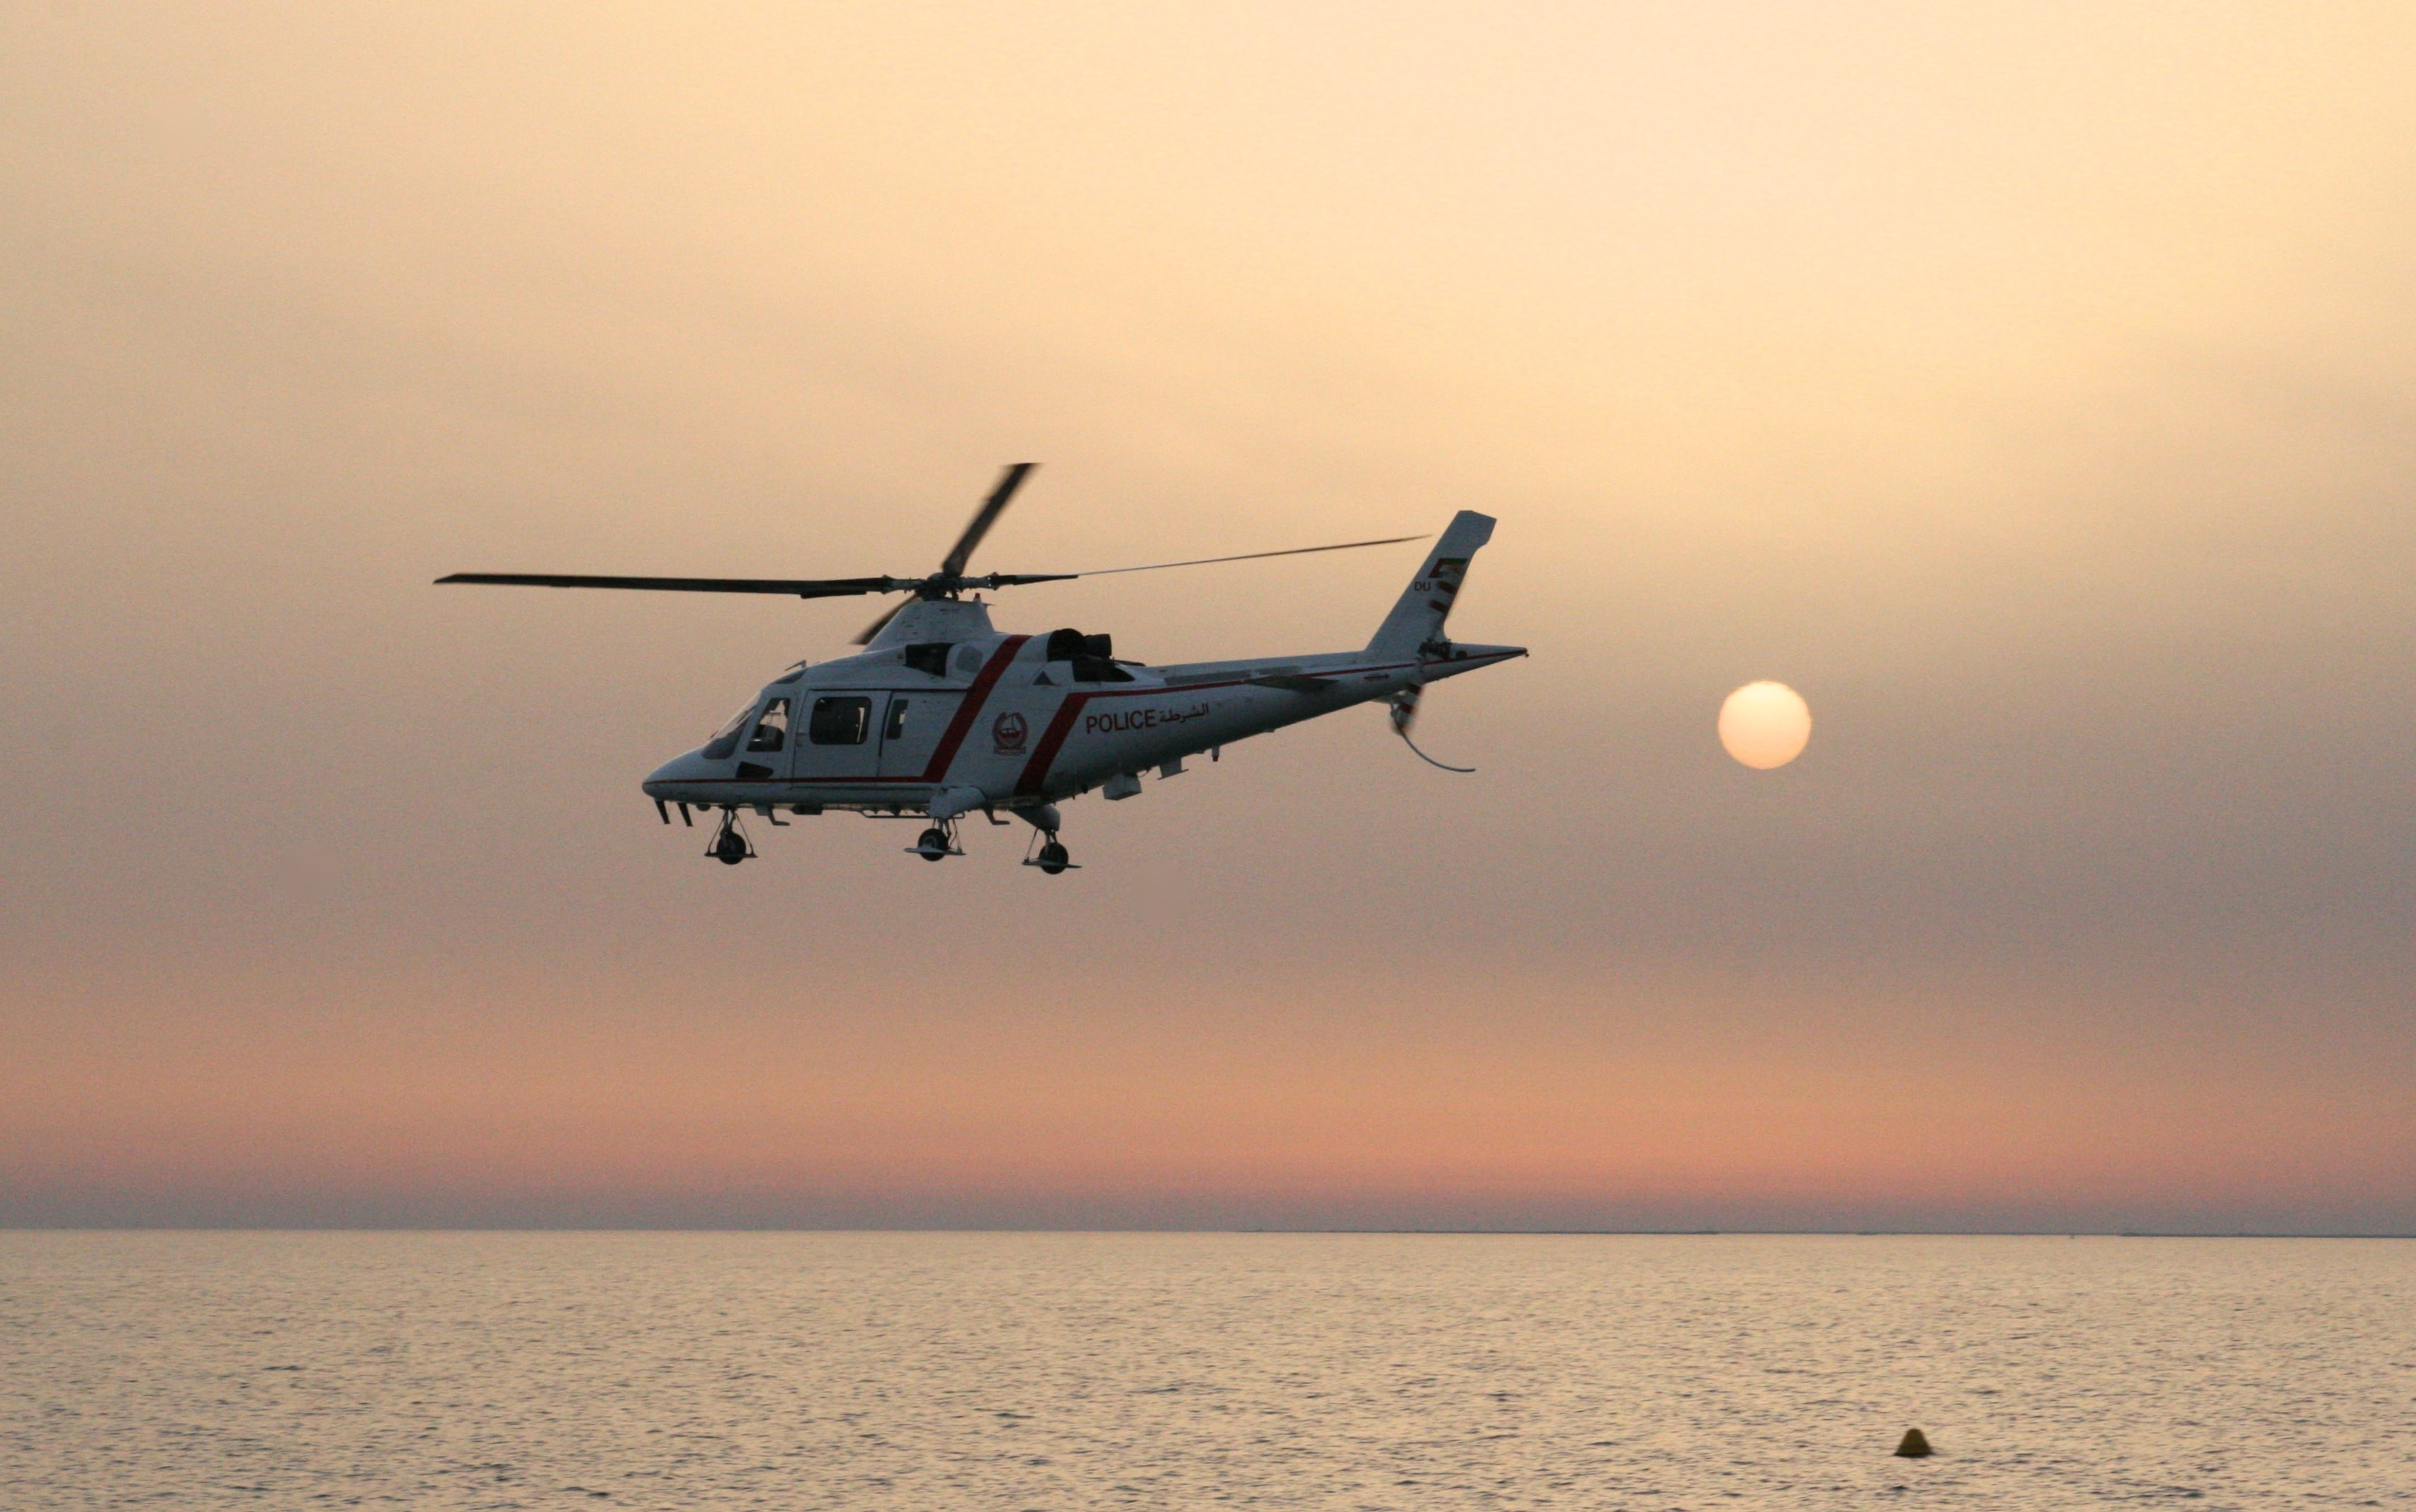 white and red helicopter flying over the sea during sunset